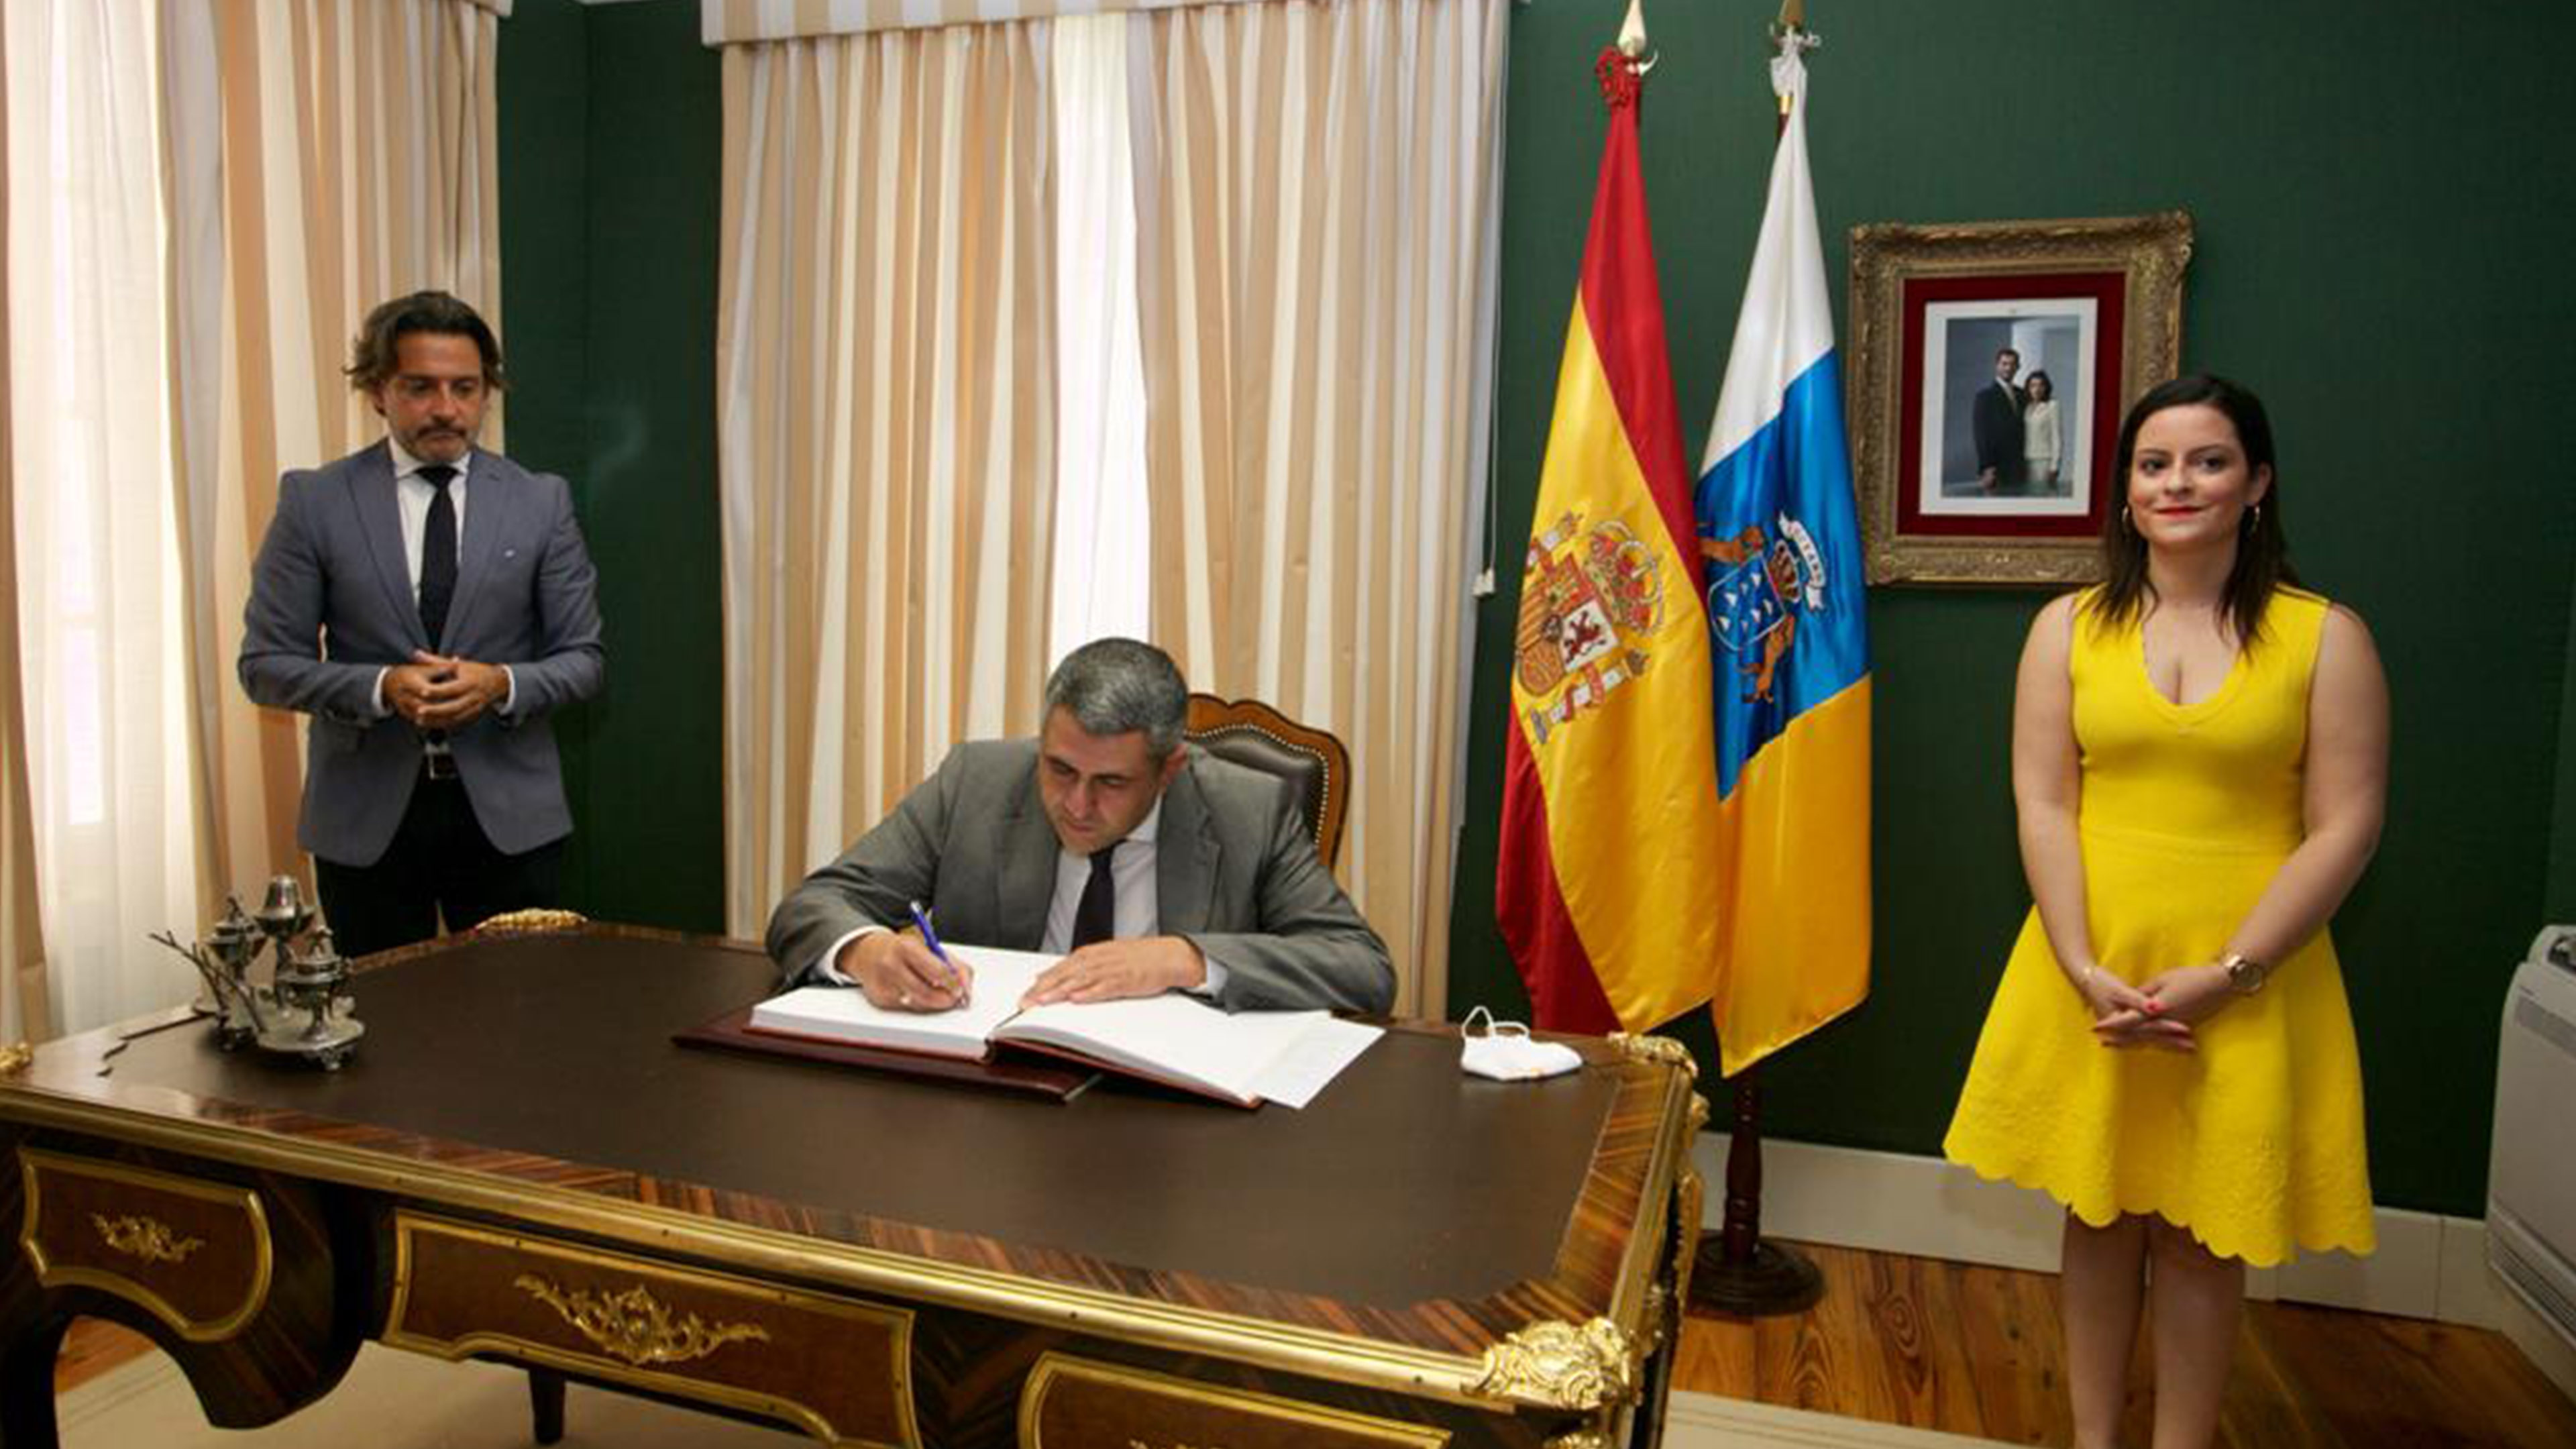 Canary island visit Secretary General UNWTO